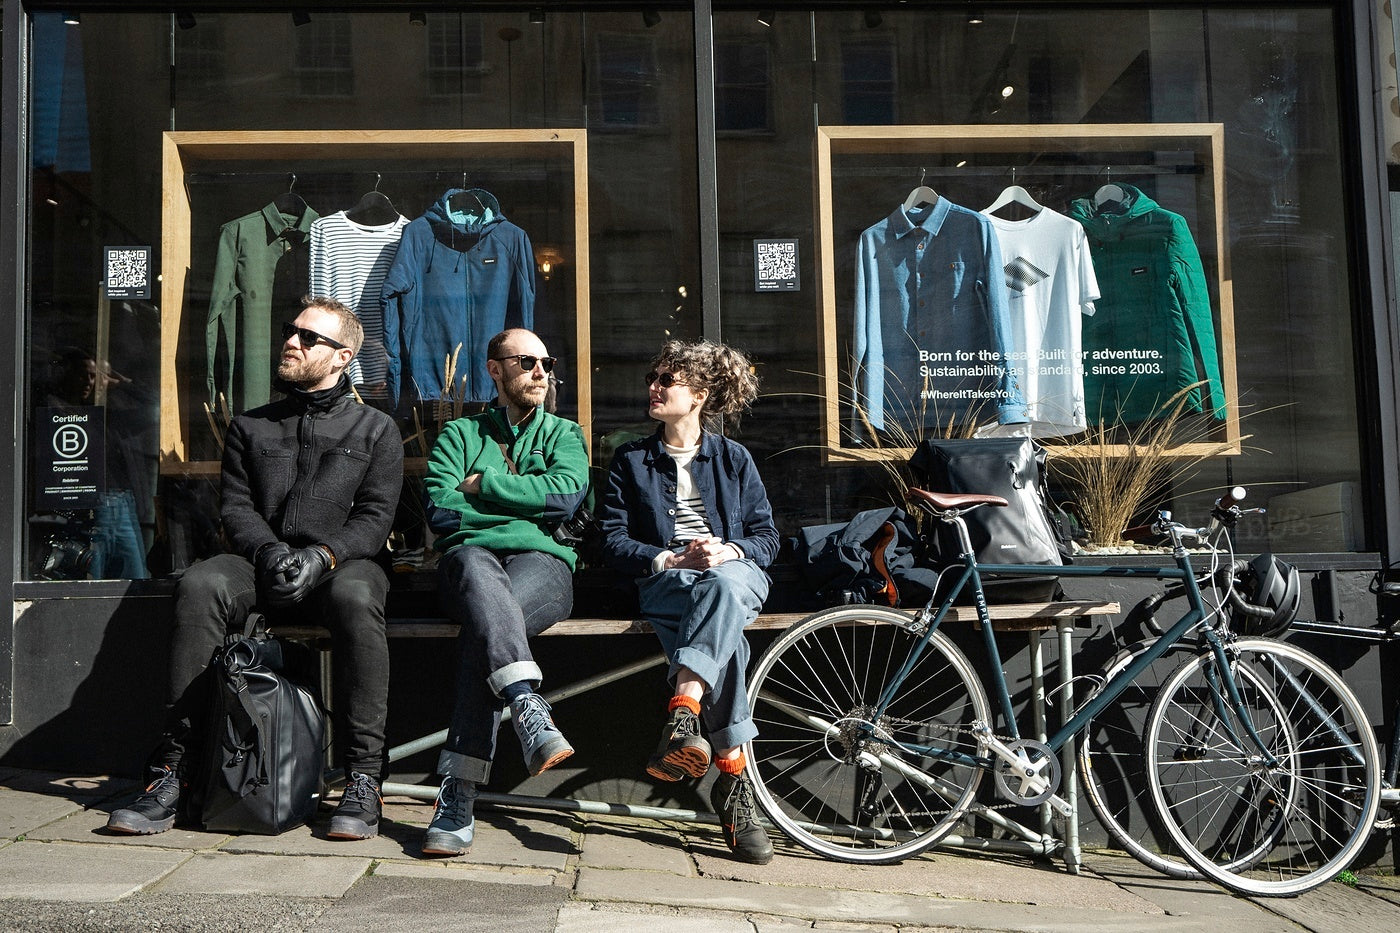 Elder Island take a pause from their bike ride outsite the Finisterre store in Bristol